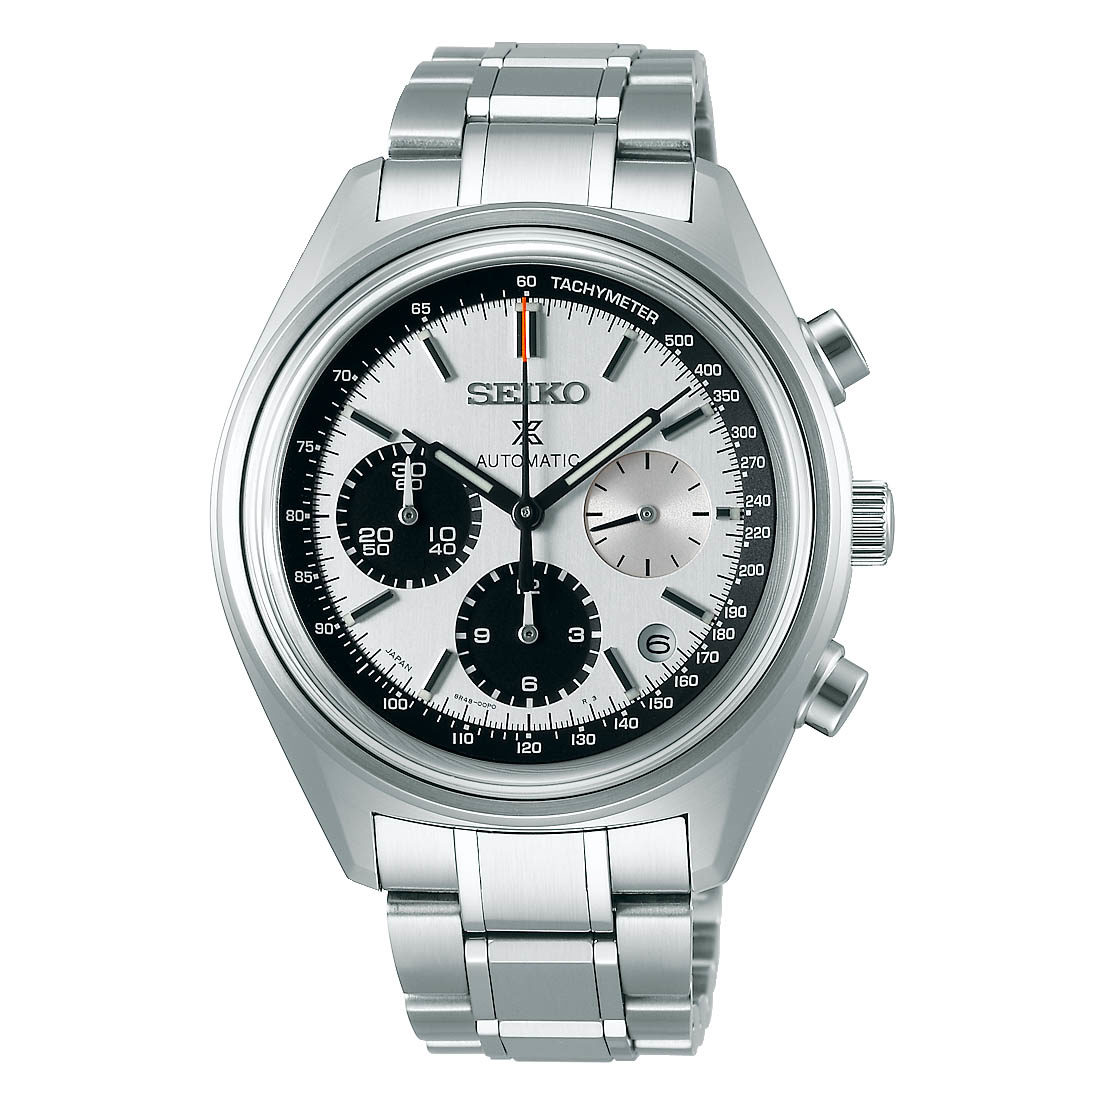 Seiko Prospex Chronograph SRQ029J1 Limited Edition mens watches